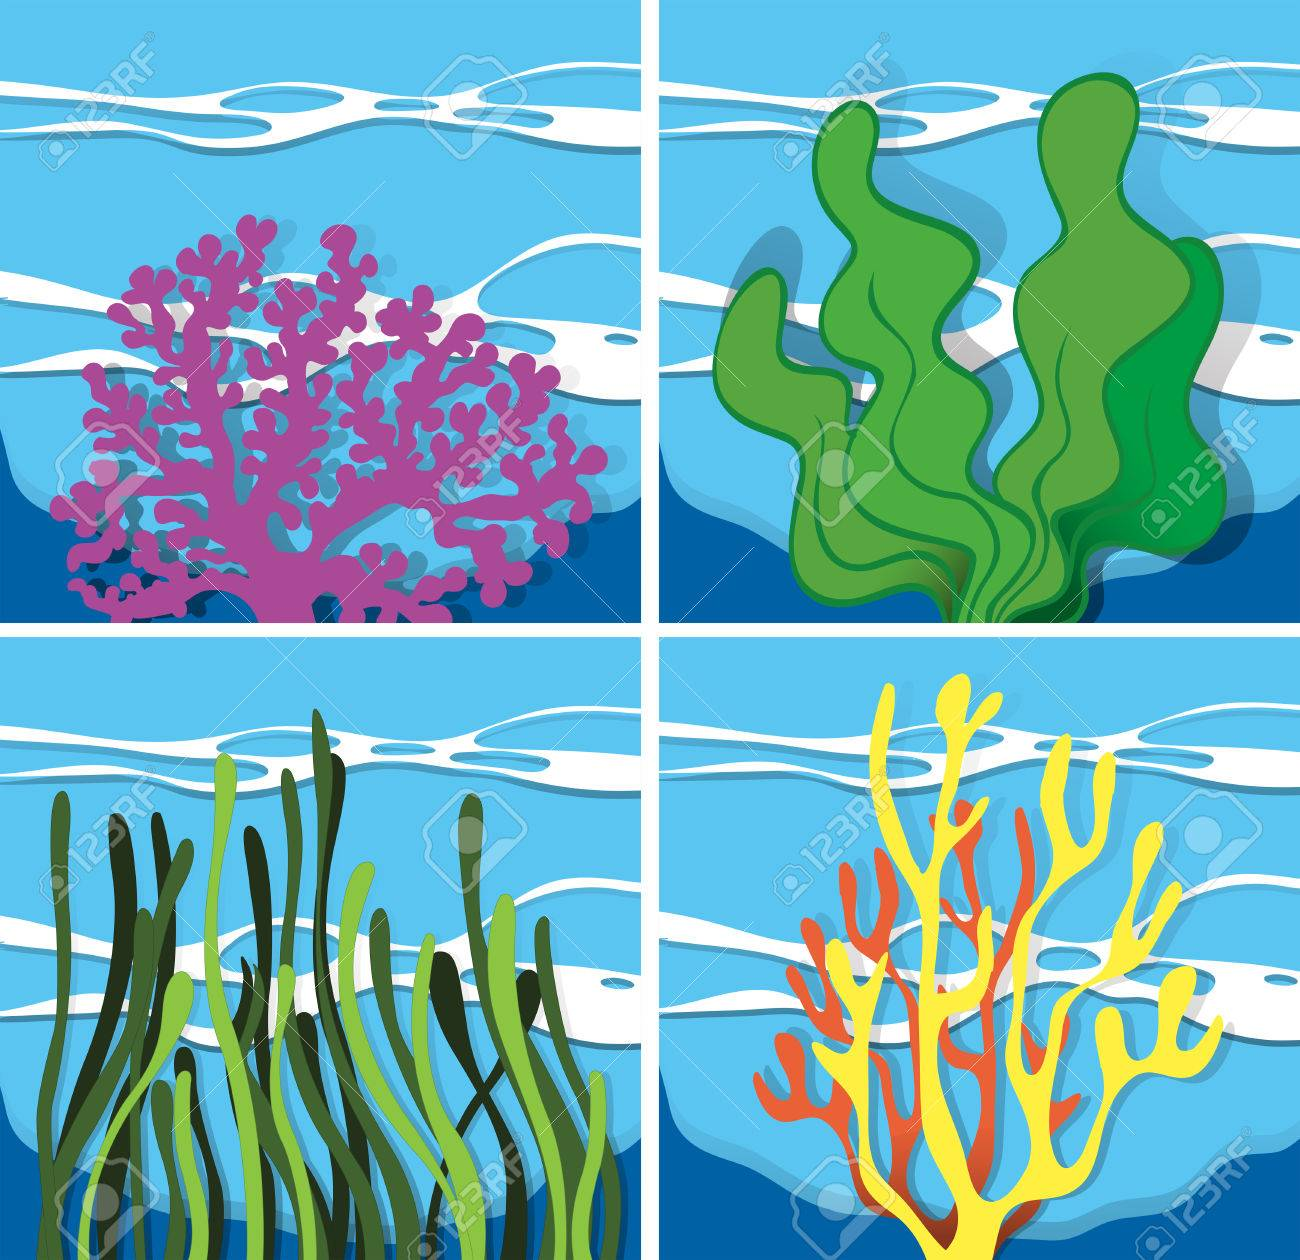 Coral reef under the sea illustration.